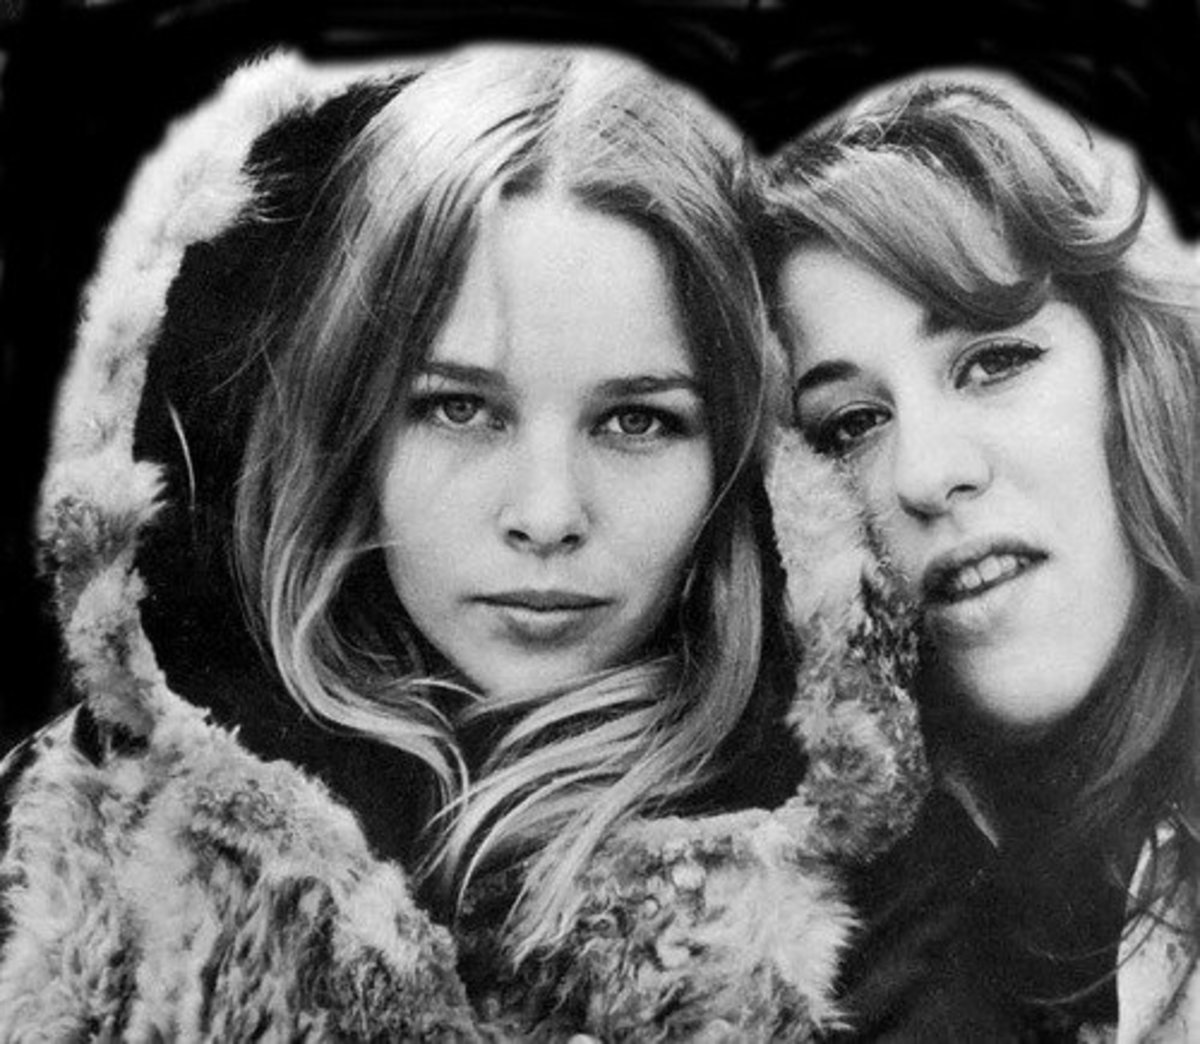 Michelle Phillips & Mama Cass.